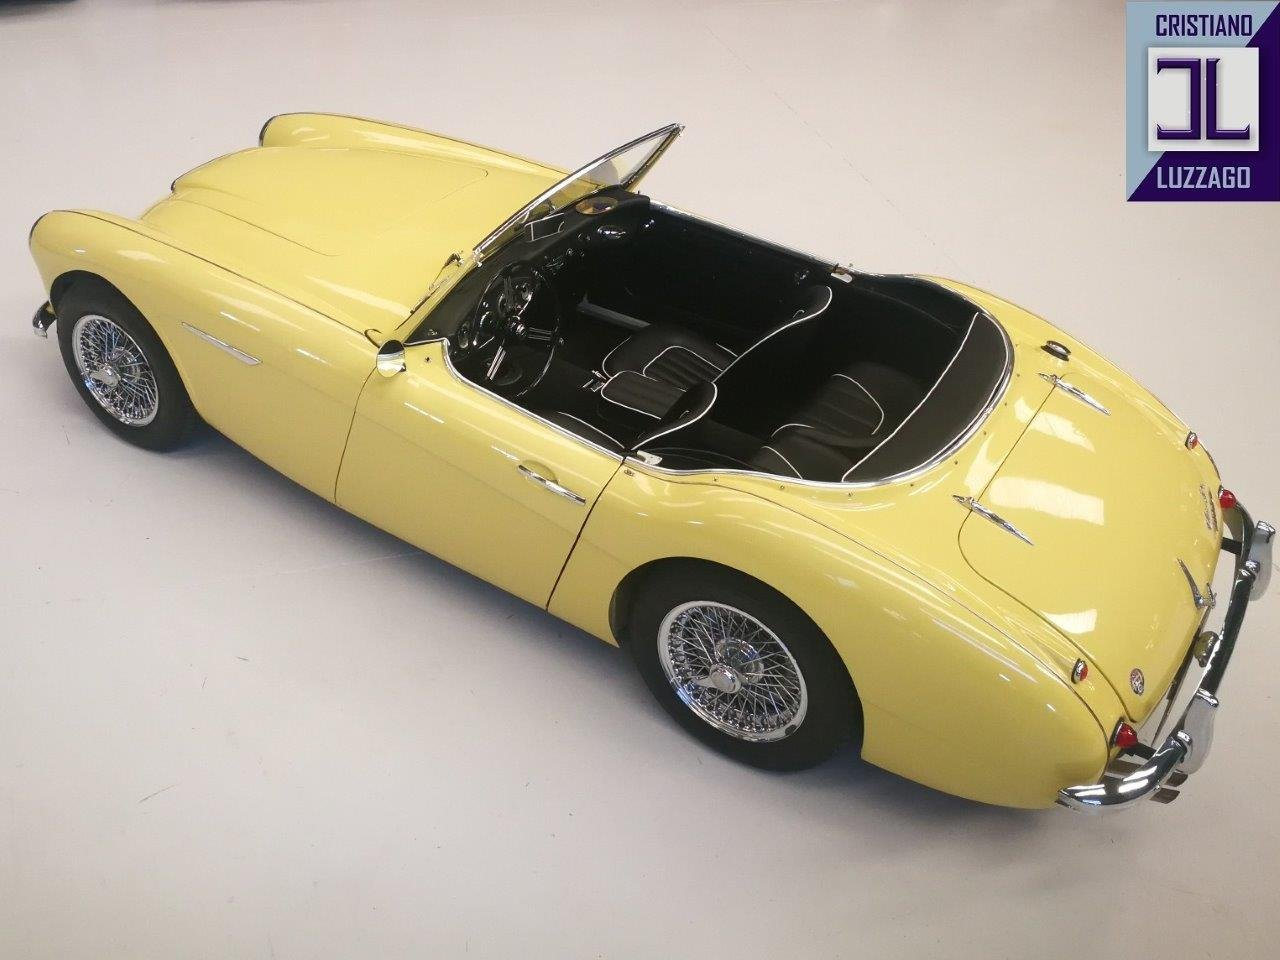 1960 AUSTIN HEALEY 3000 MK1 4 SEATER For Sale (picture 2 of 6)